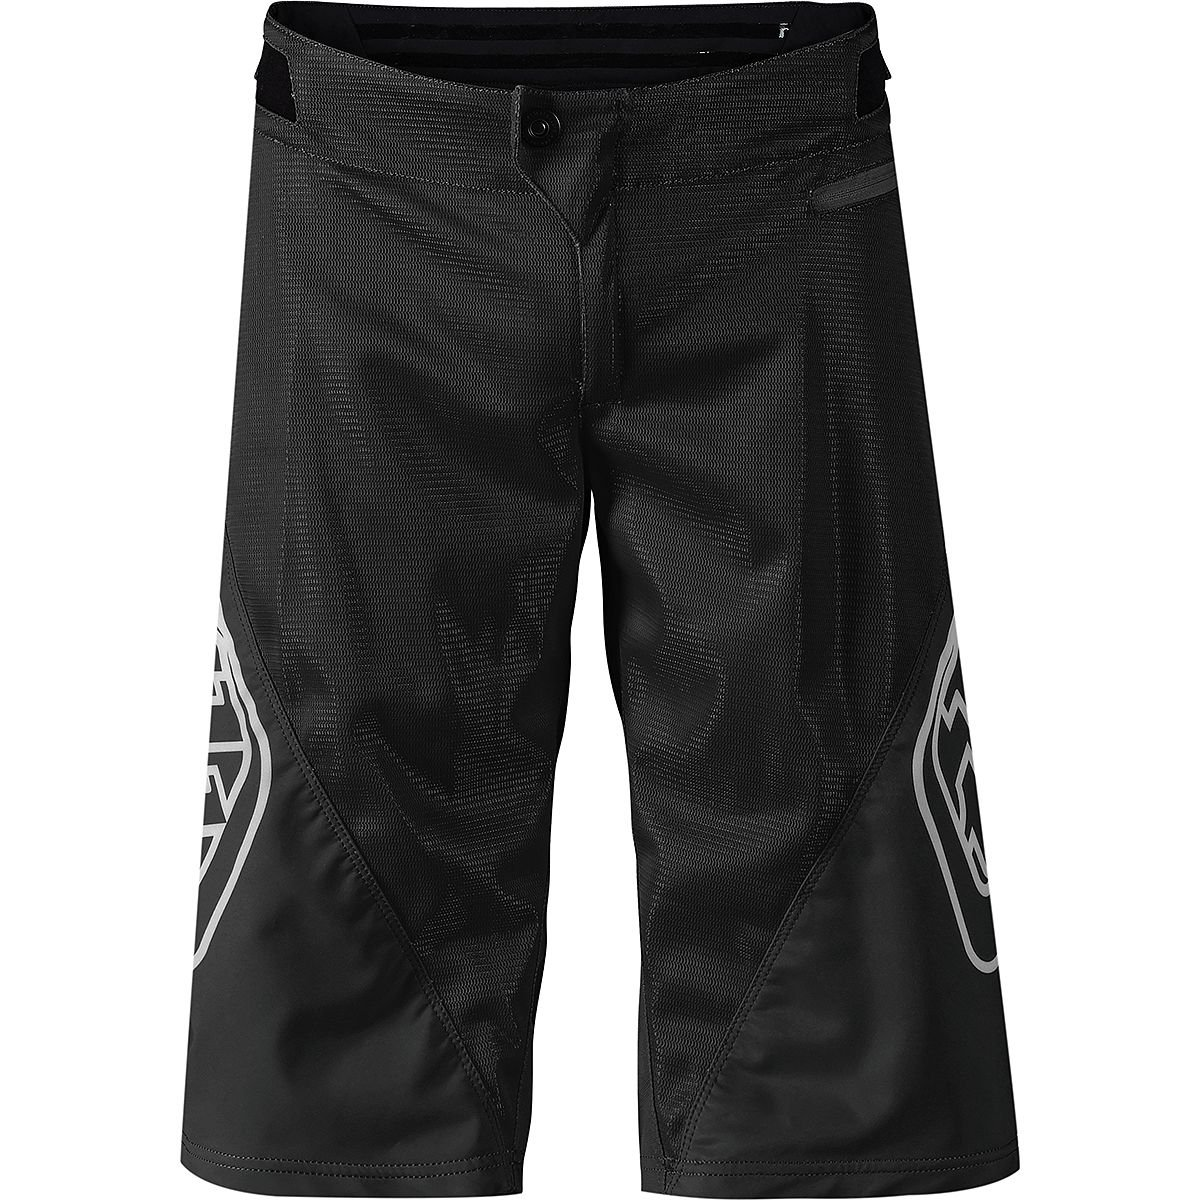 Troy Lee Designs Sprint Shorts - Boys' Solid Black, 20 by Troy Lee Designs